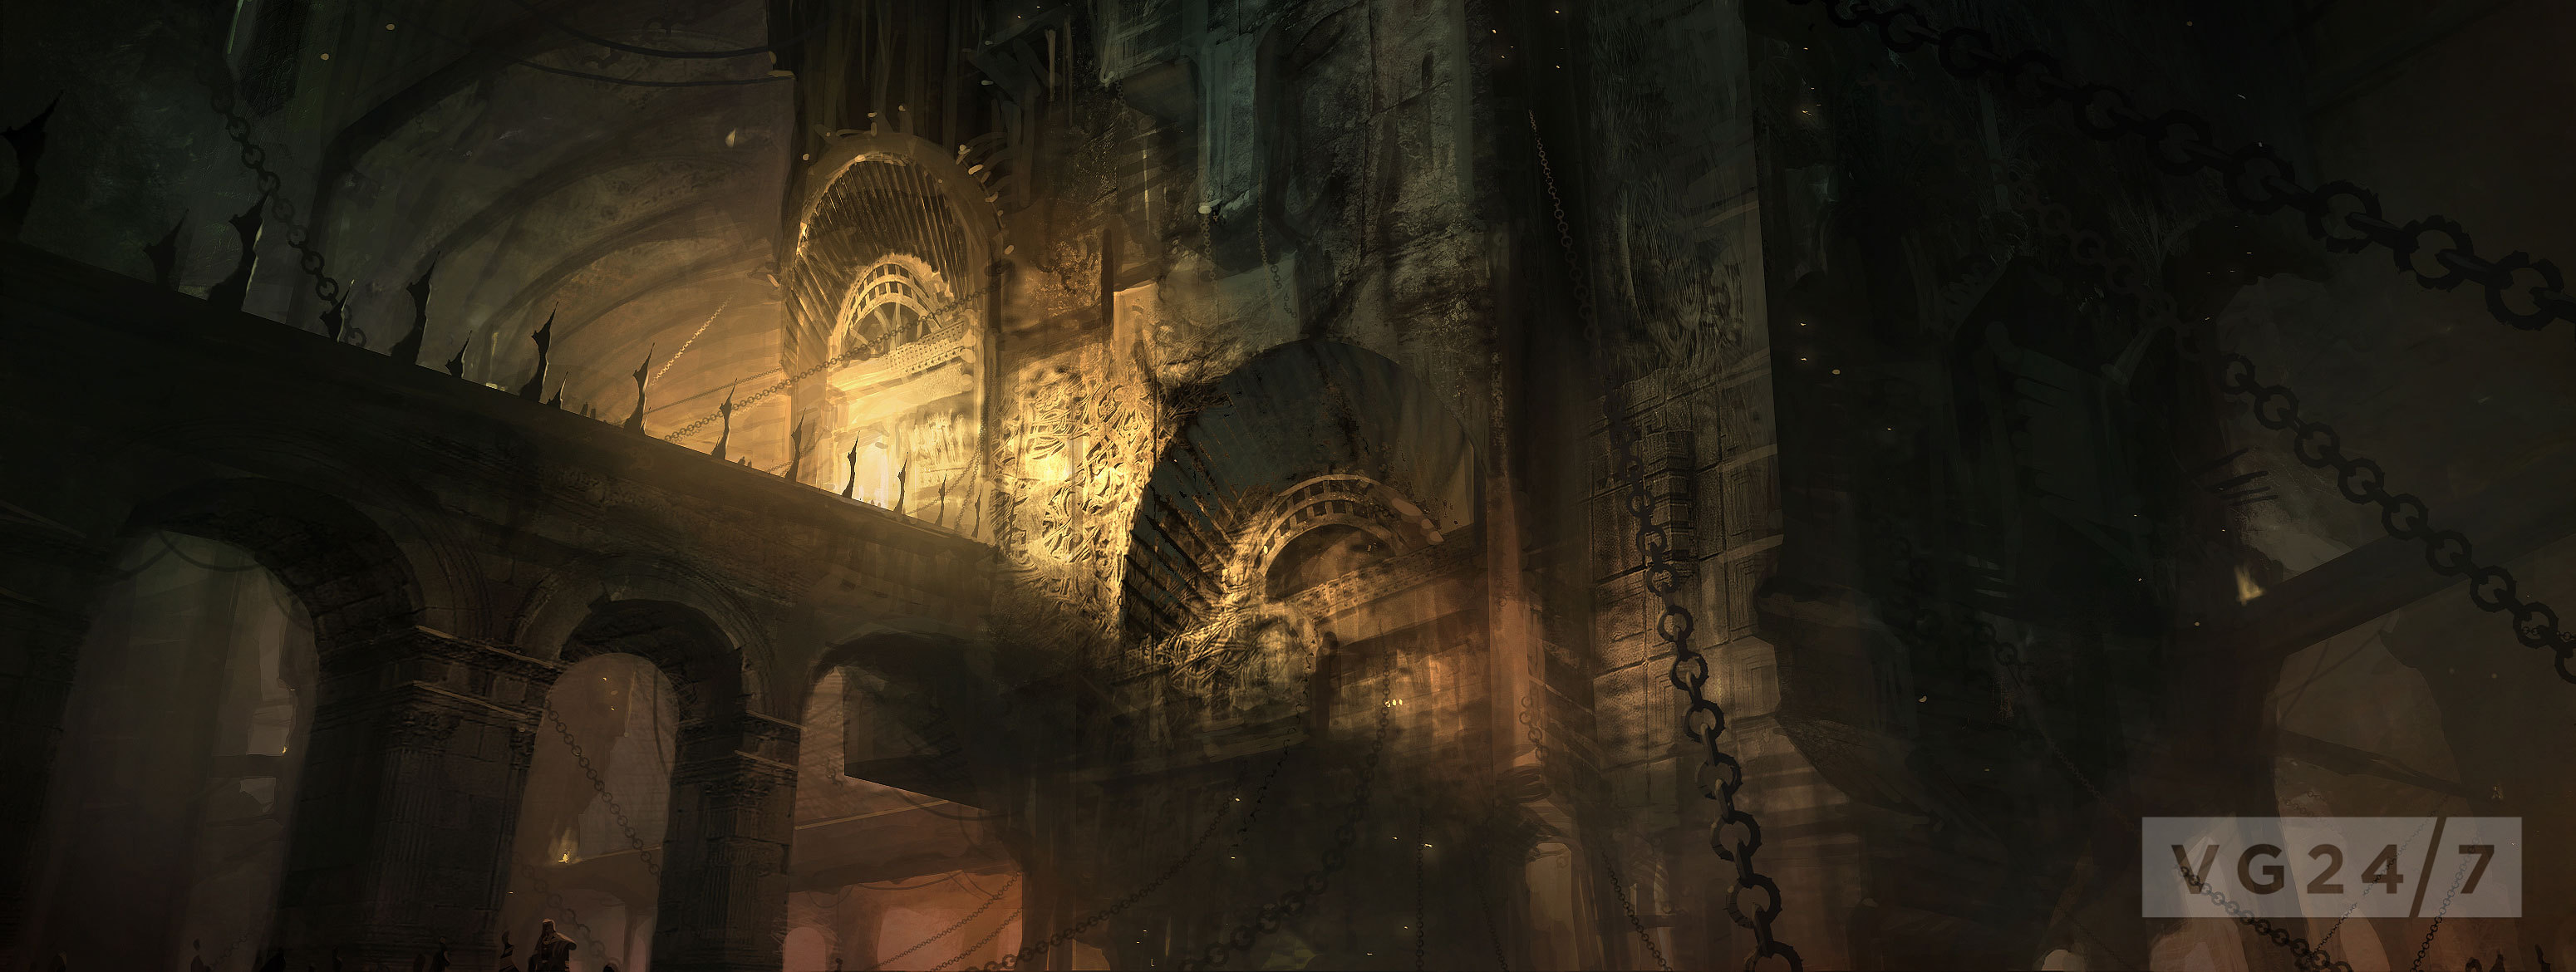 A report on the forinthry dungeon in the game guild wars 2 Essay